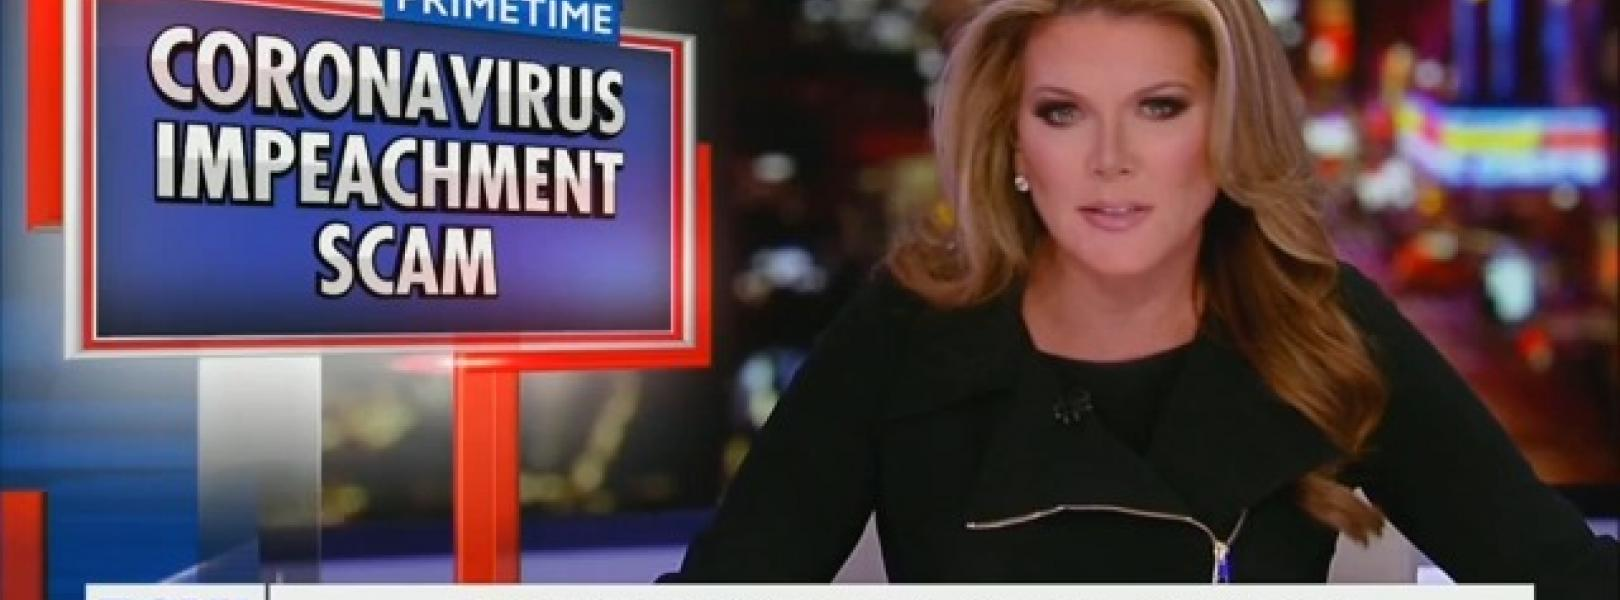 "Trish Regan says Democrats are using coronavirus as ""another attempt to impeach the president"""